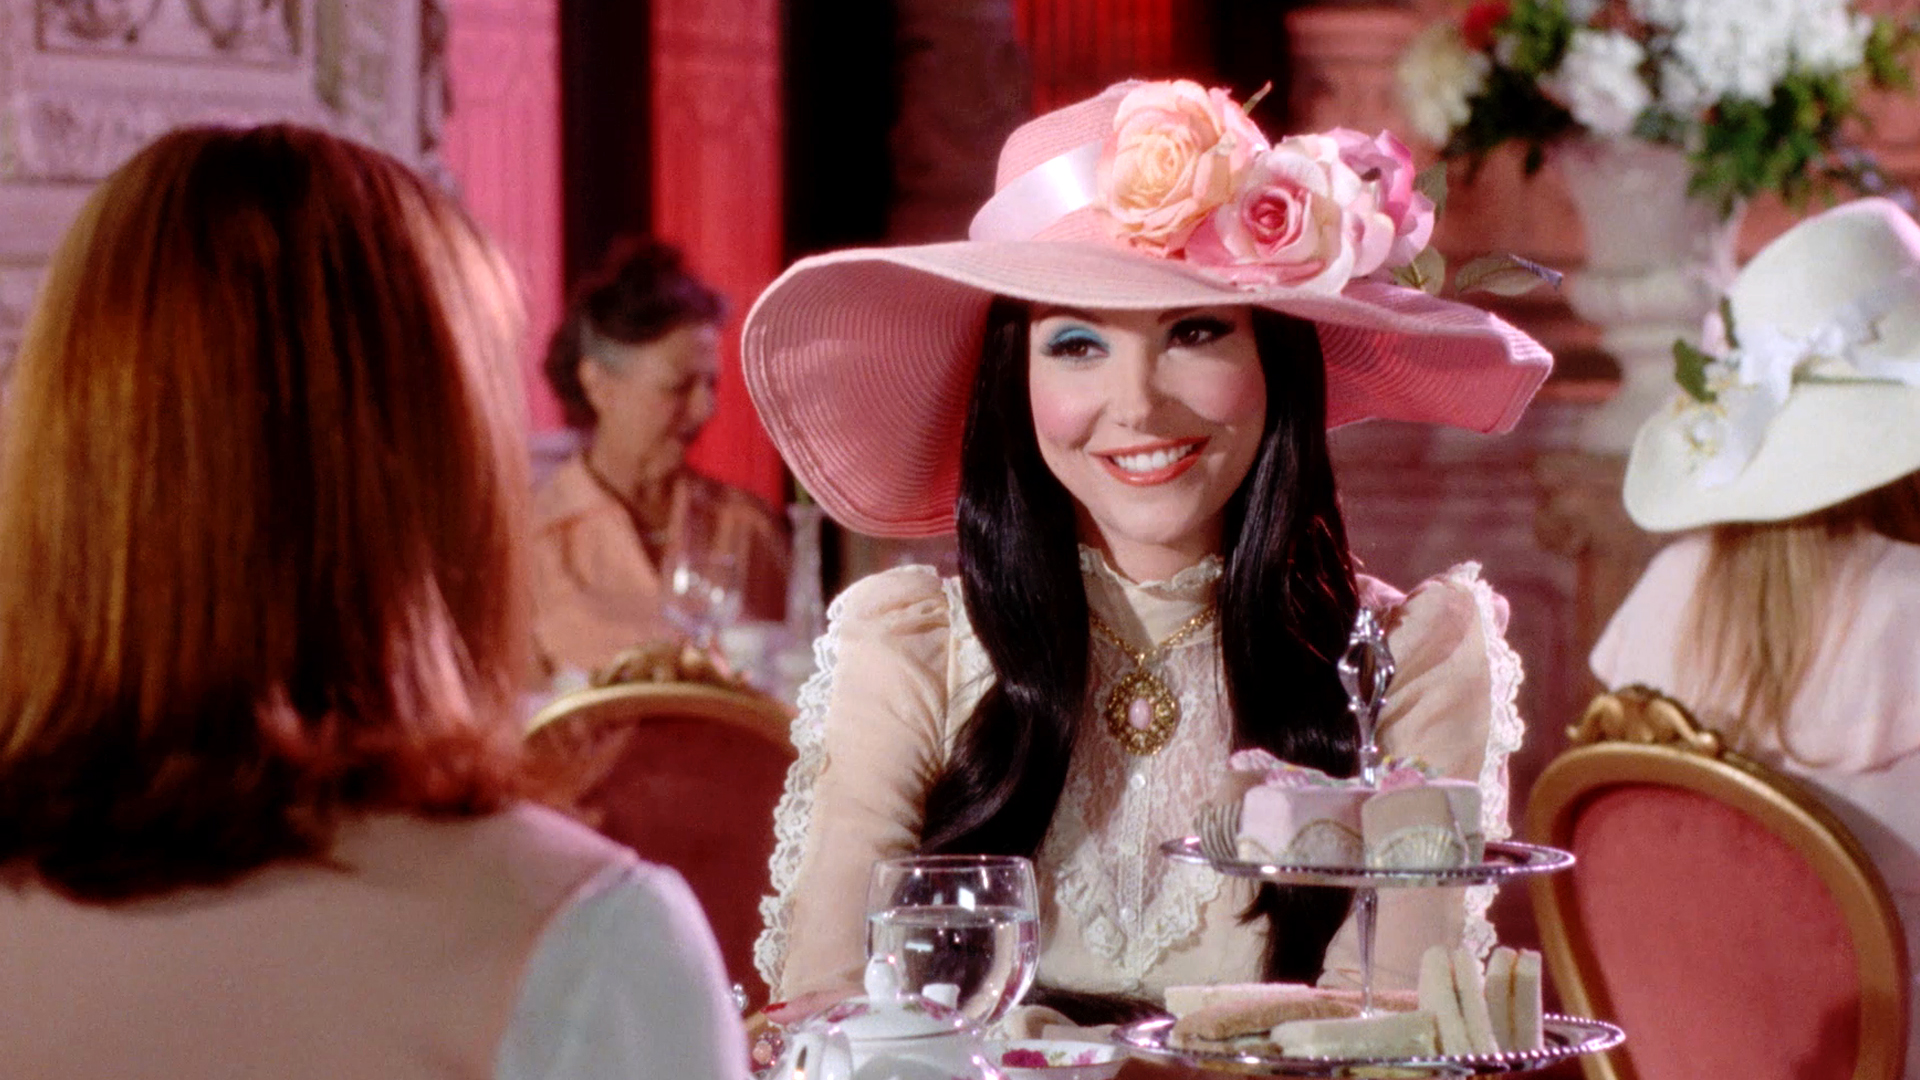 While writing, directing, producing, editing, scoring, and set designing,  The Love Witch 's Anna Biller also found time to design our favourite costumes of the year.  The film had a special Halloween screening at our cinema last fall .